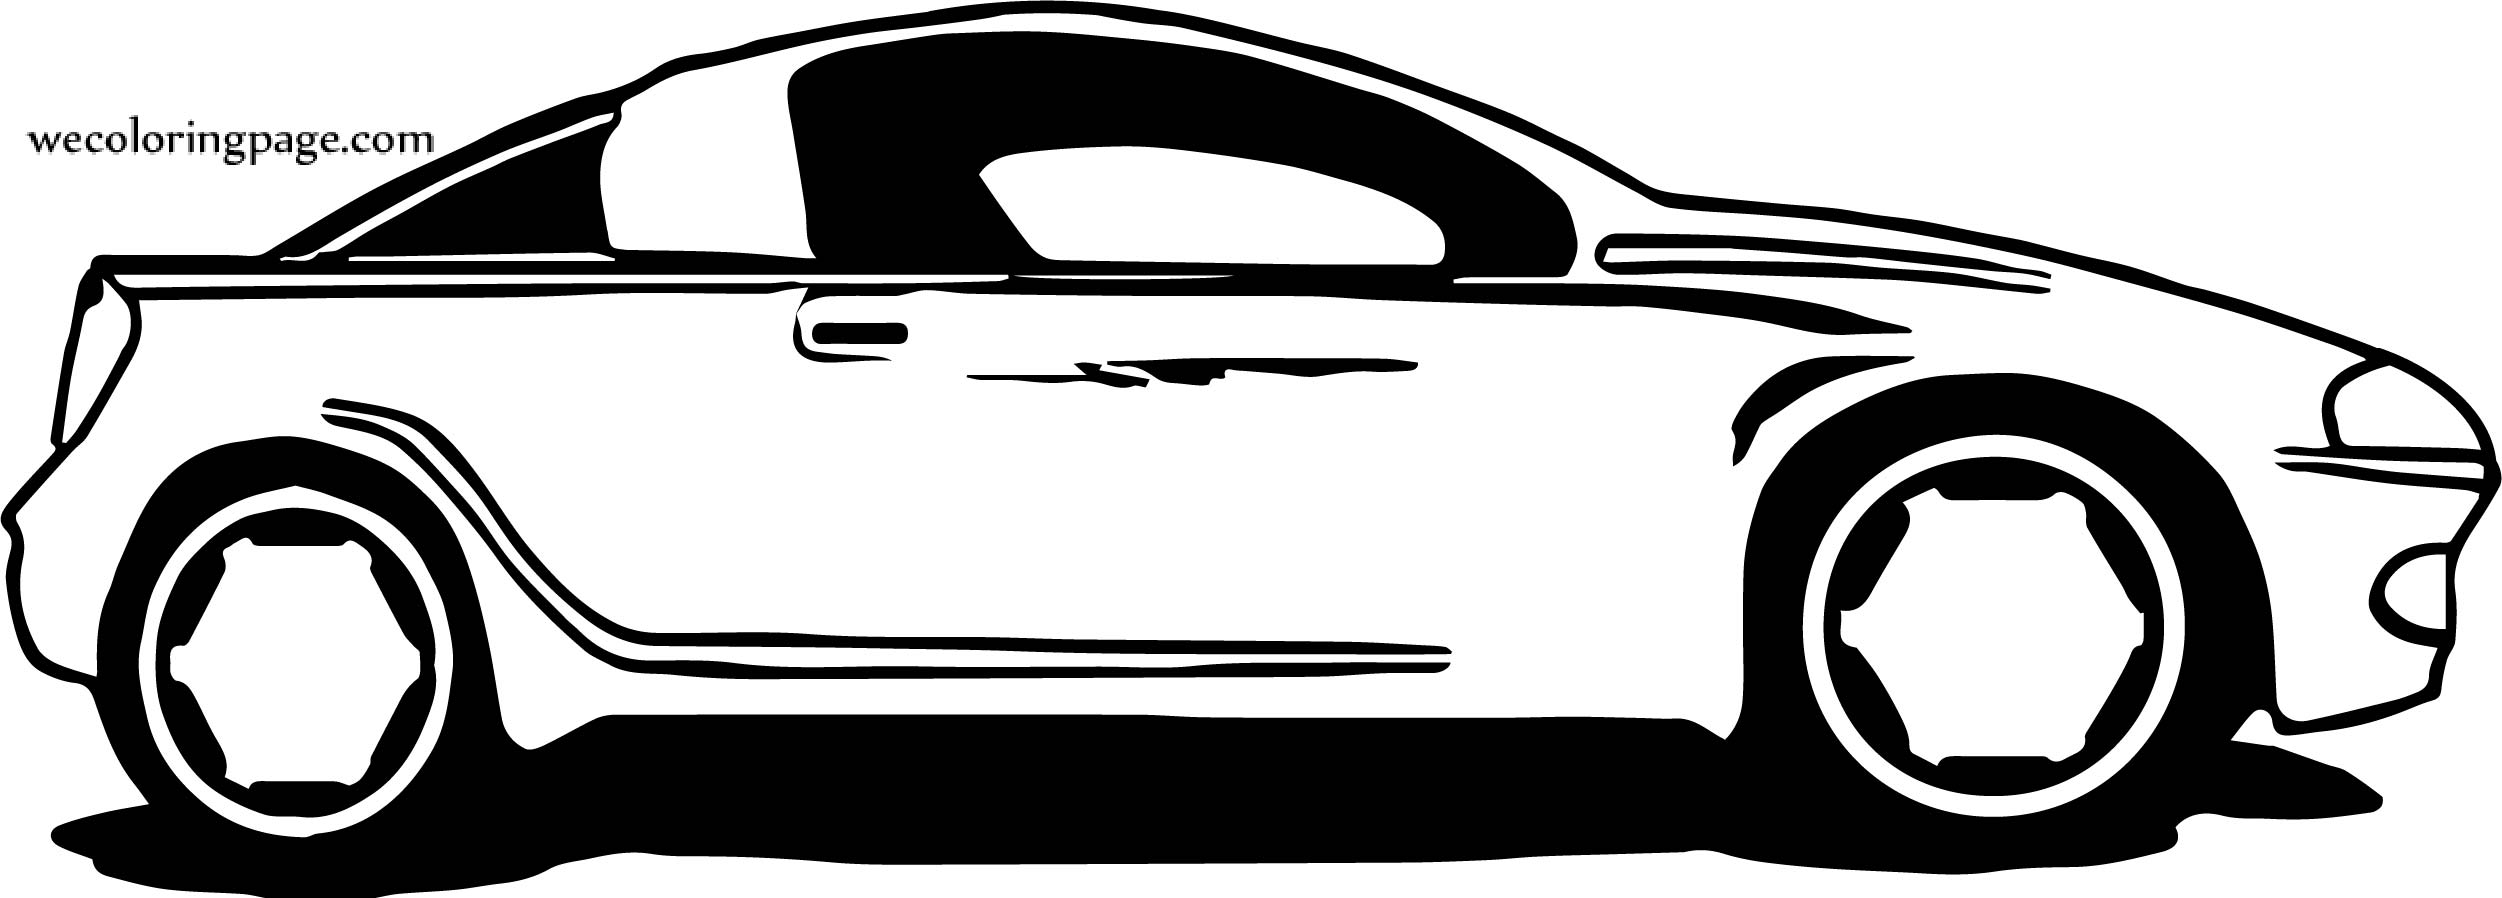 Car Wecoloringpage Coloring Page 134